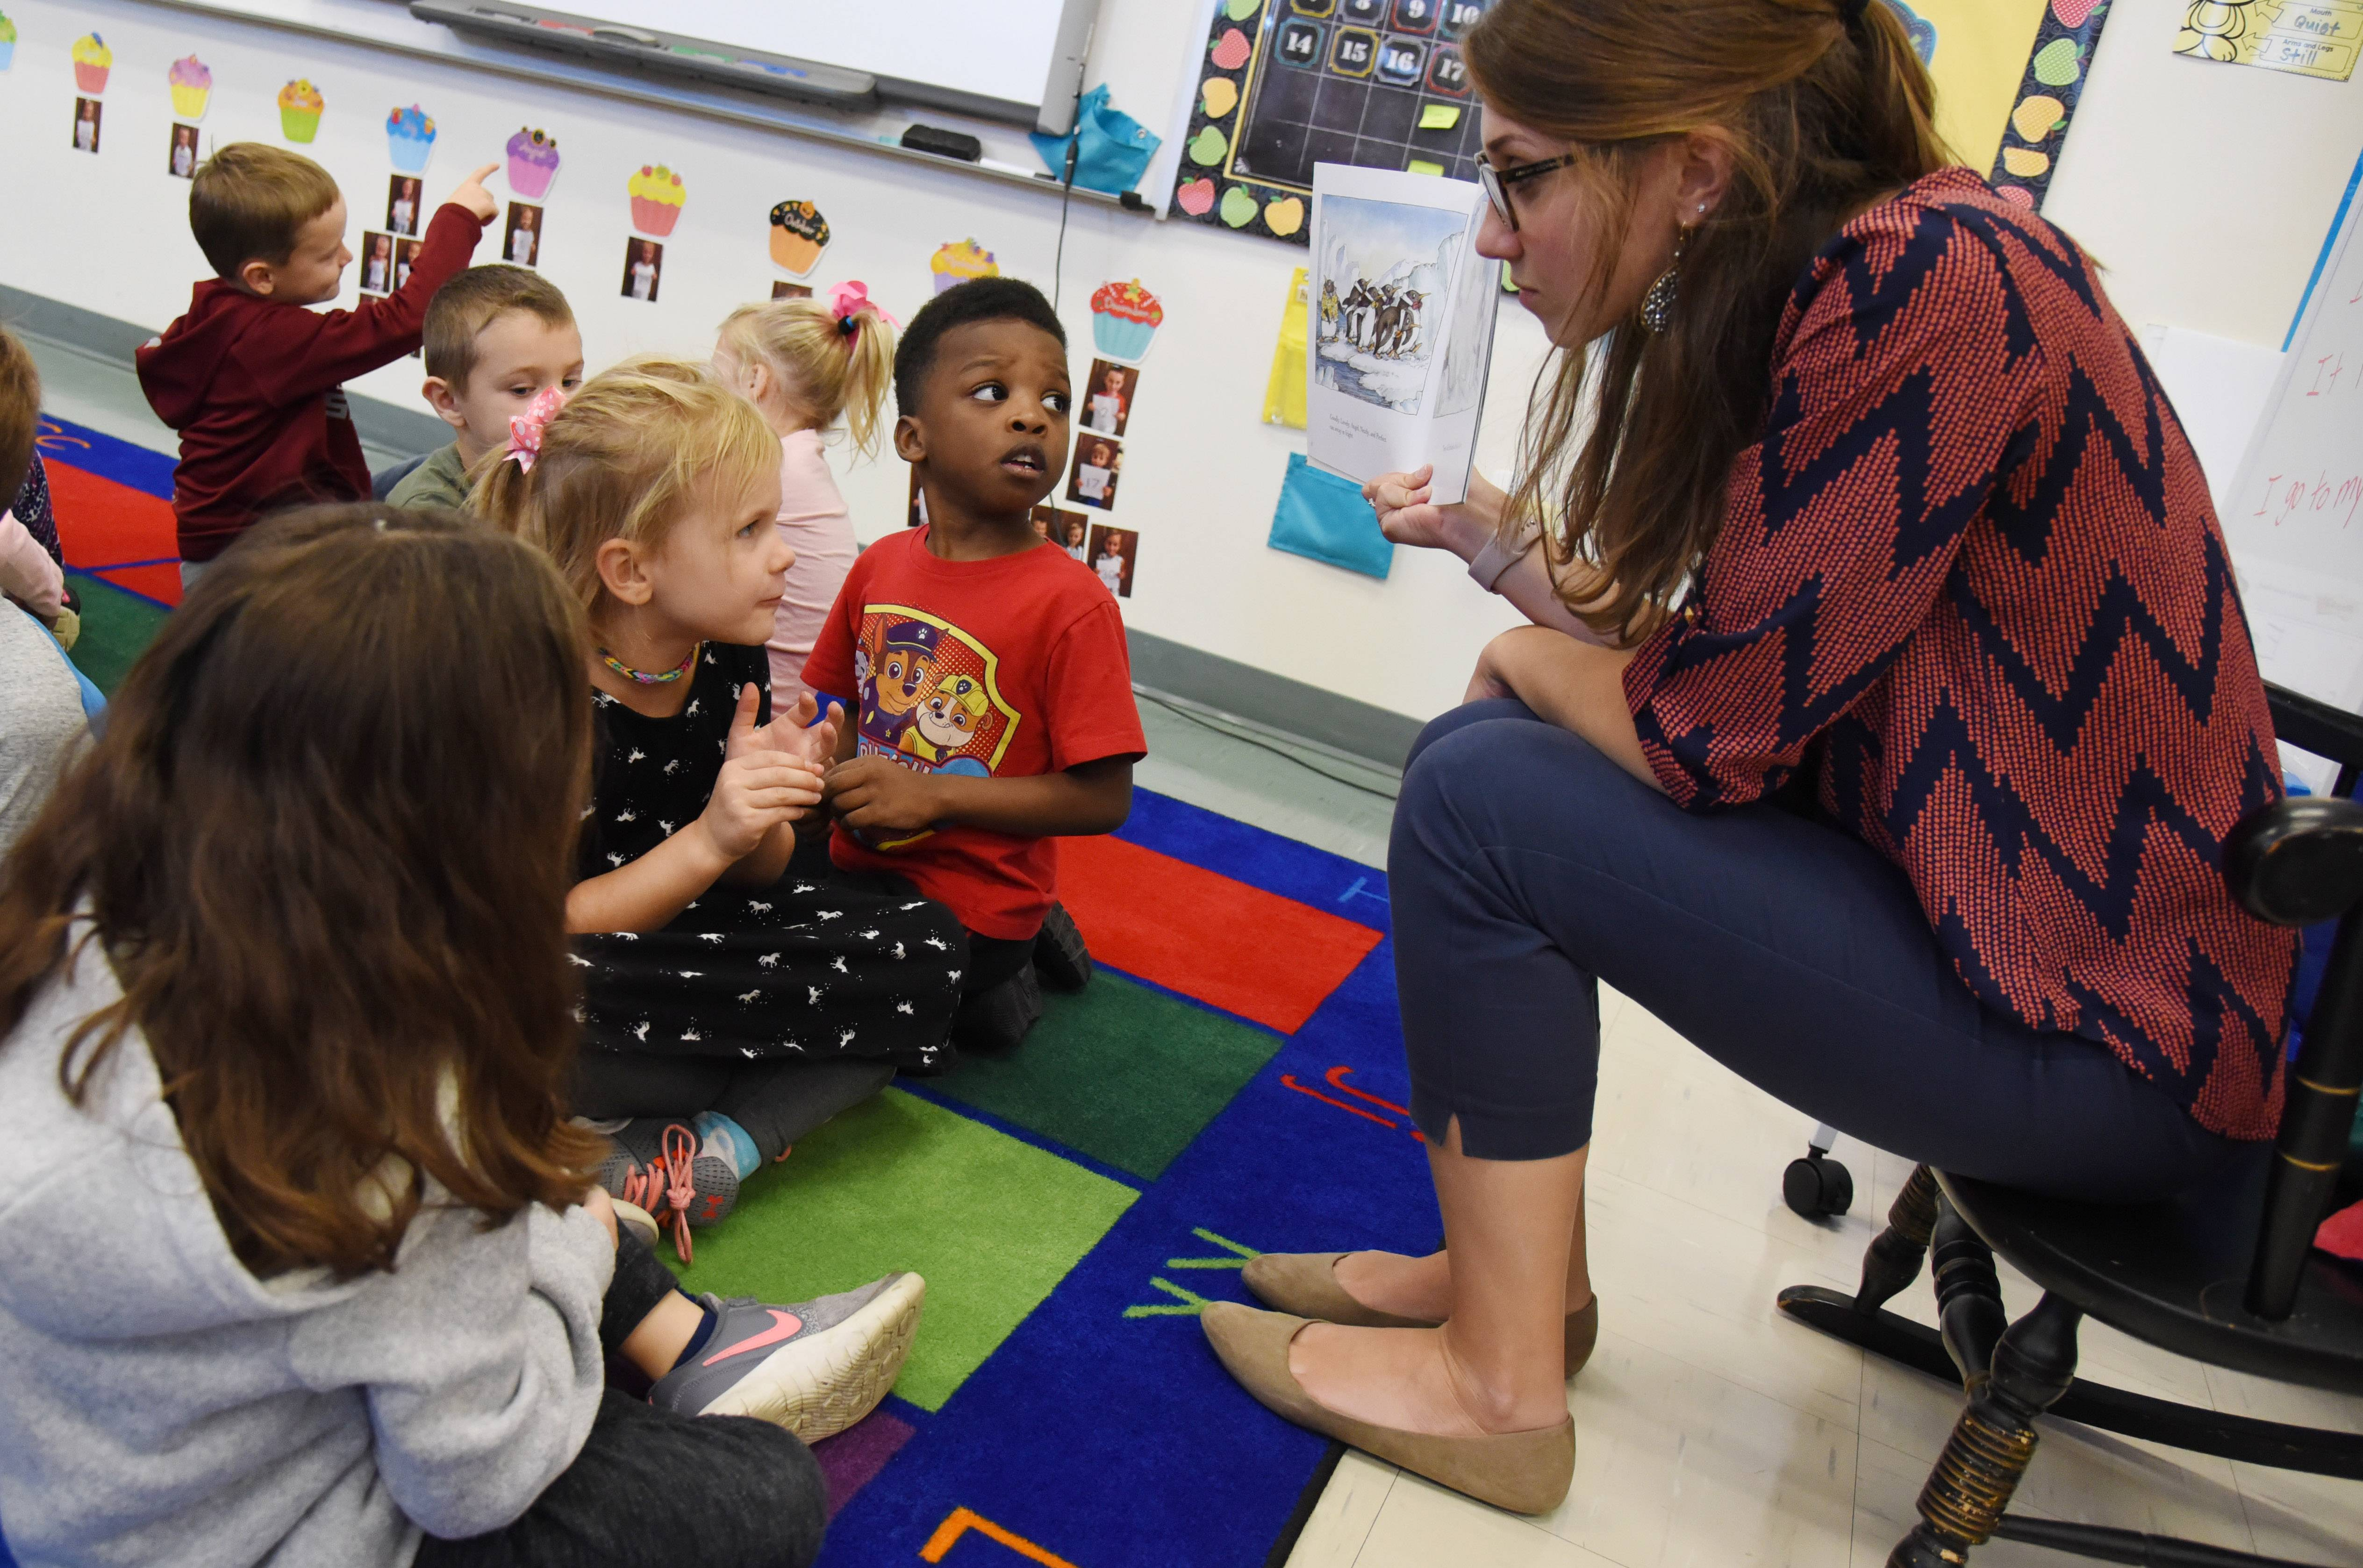 Hawthorn Elementary kindergarten teacher Abby Udelhofen, right, has a book discussion with students Kelly Shields and Makai Brewster Wednesday at the Elmhurst school.